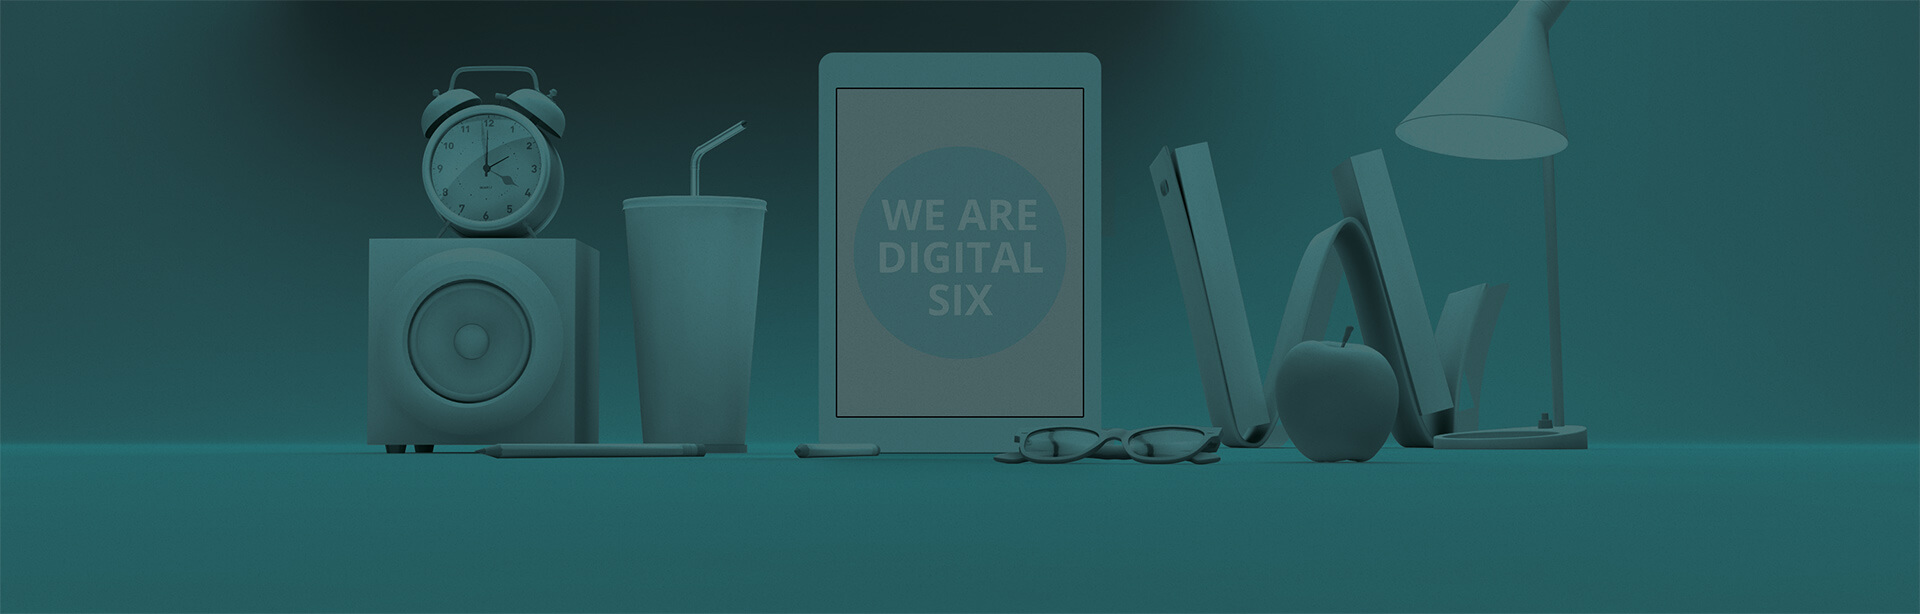 We are Digital Six